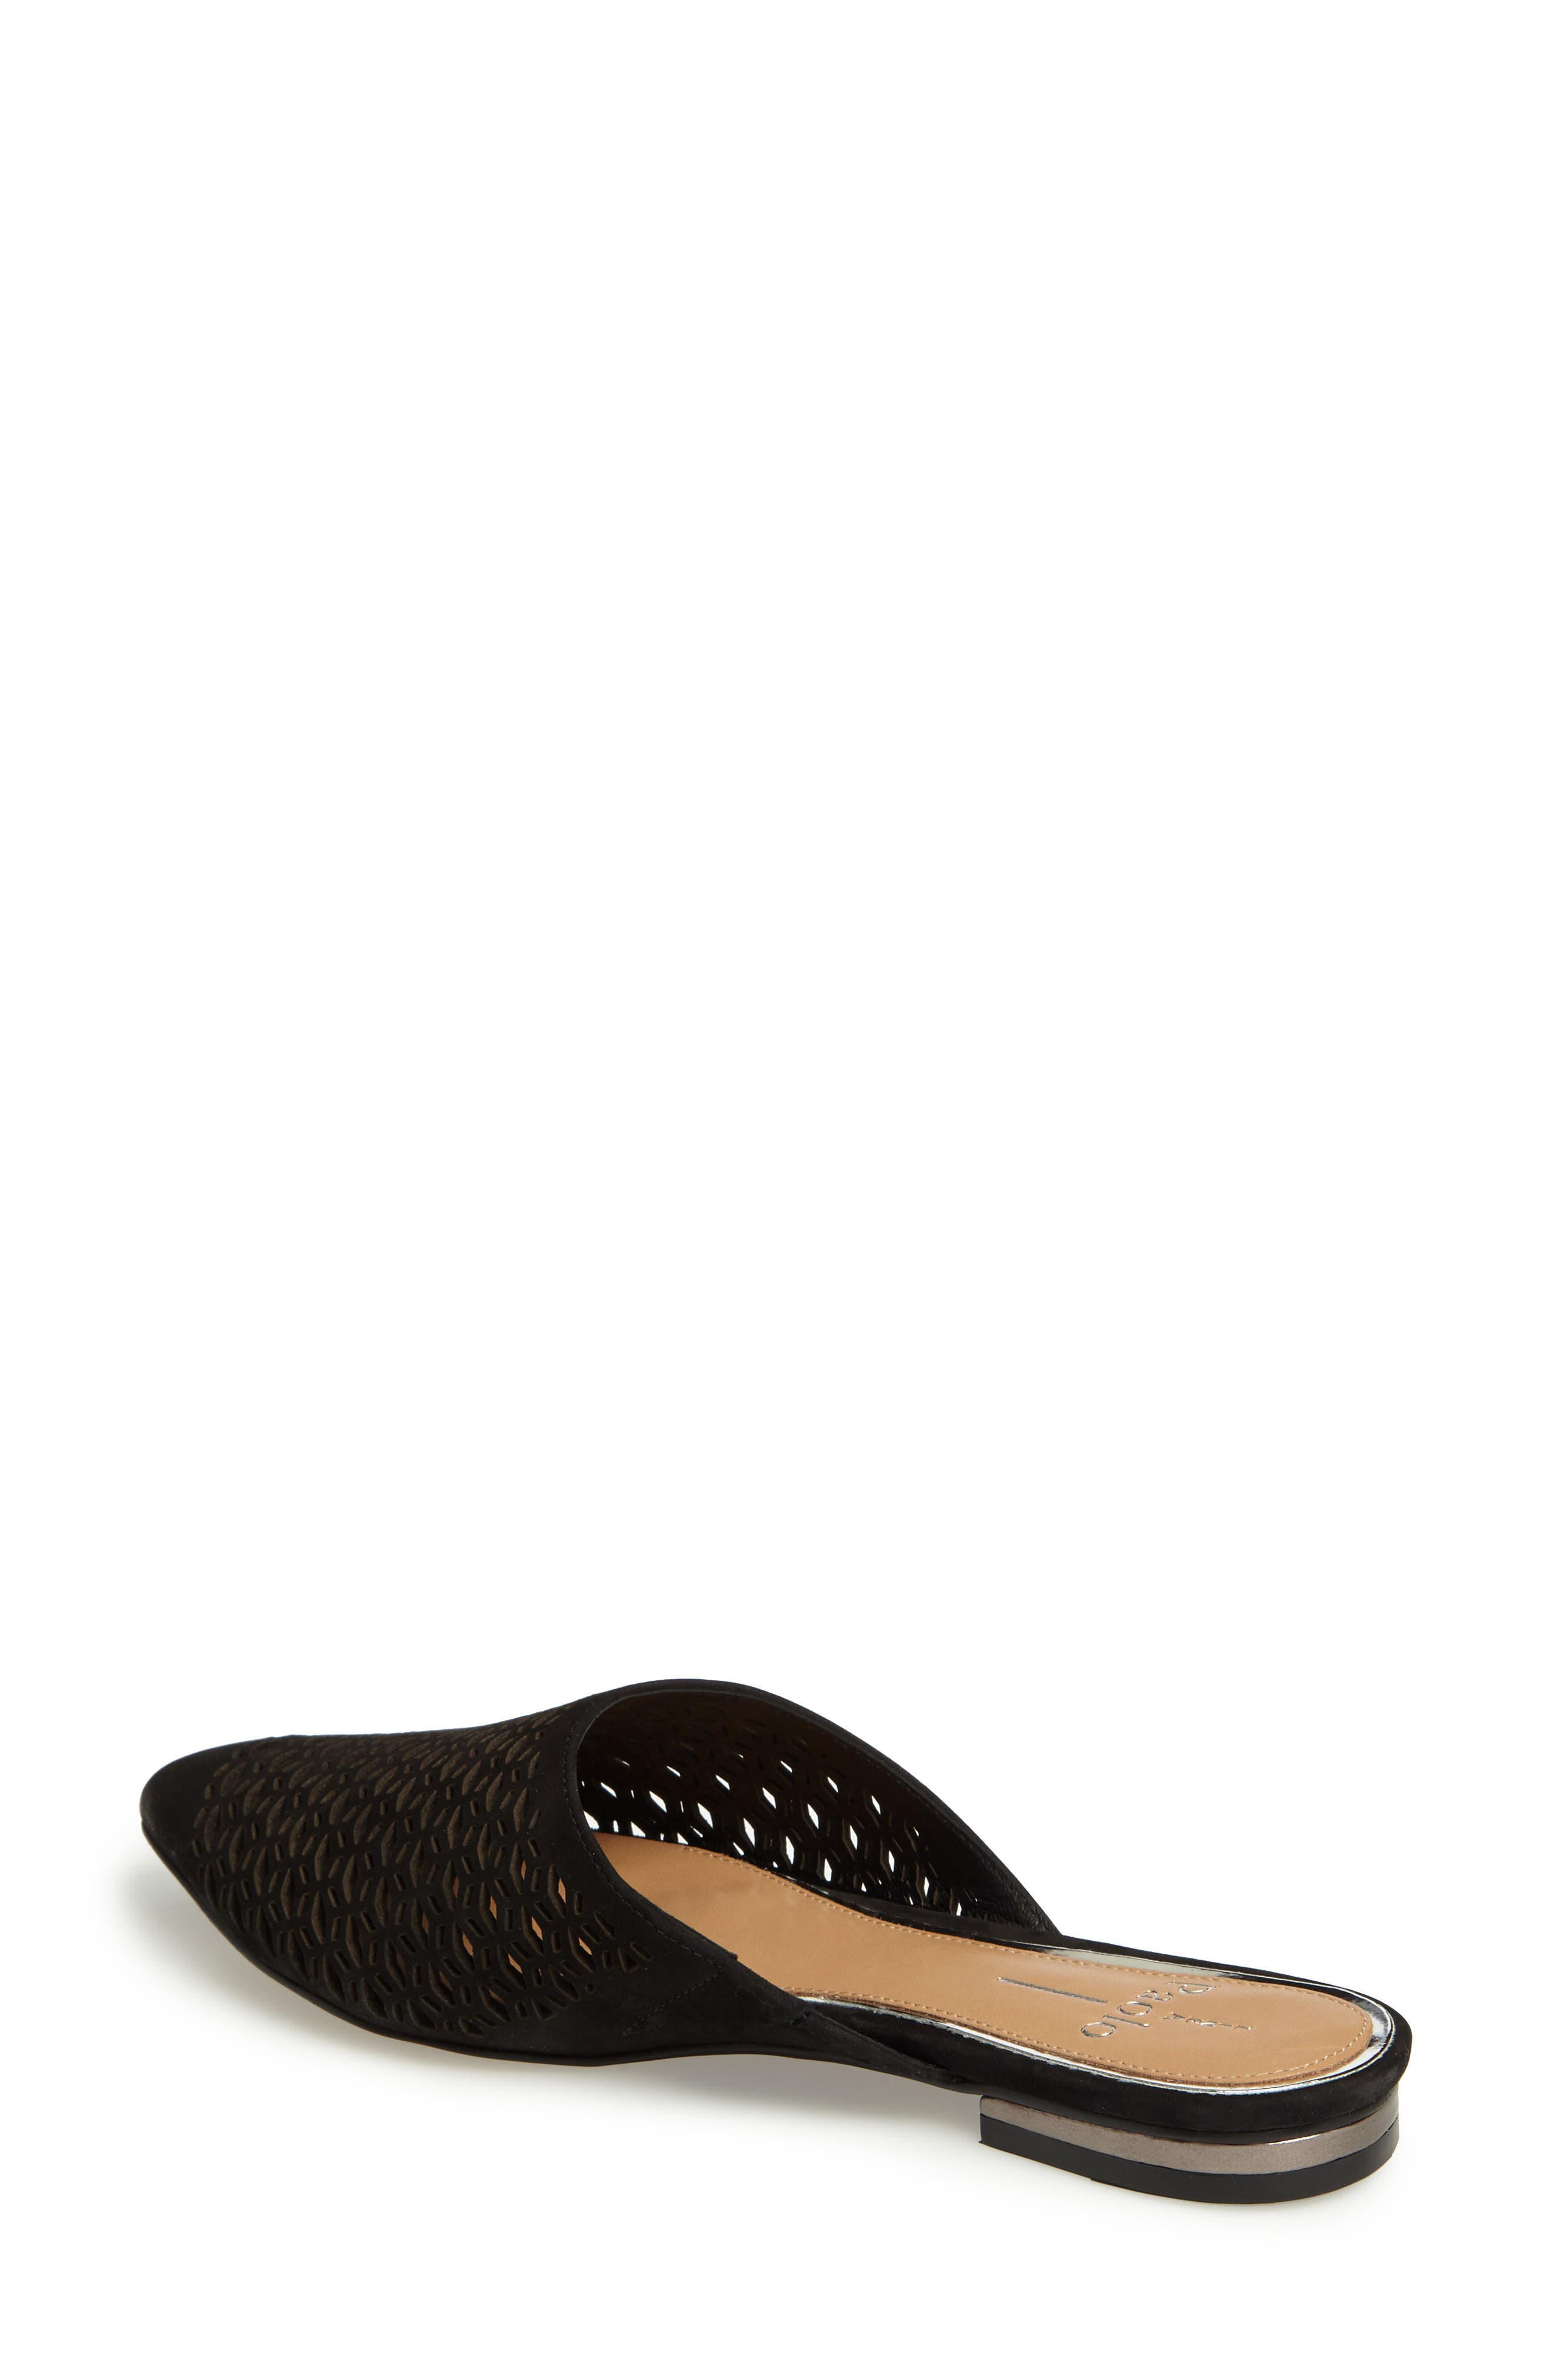 Daisy Perforated Mule,                             Alternate thumbnail 2, color,                             007